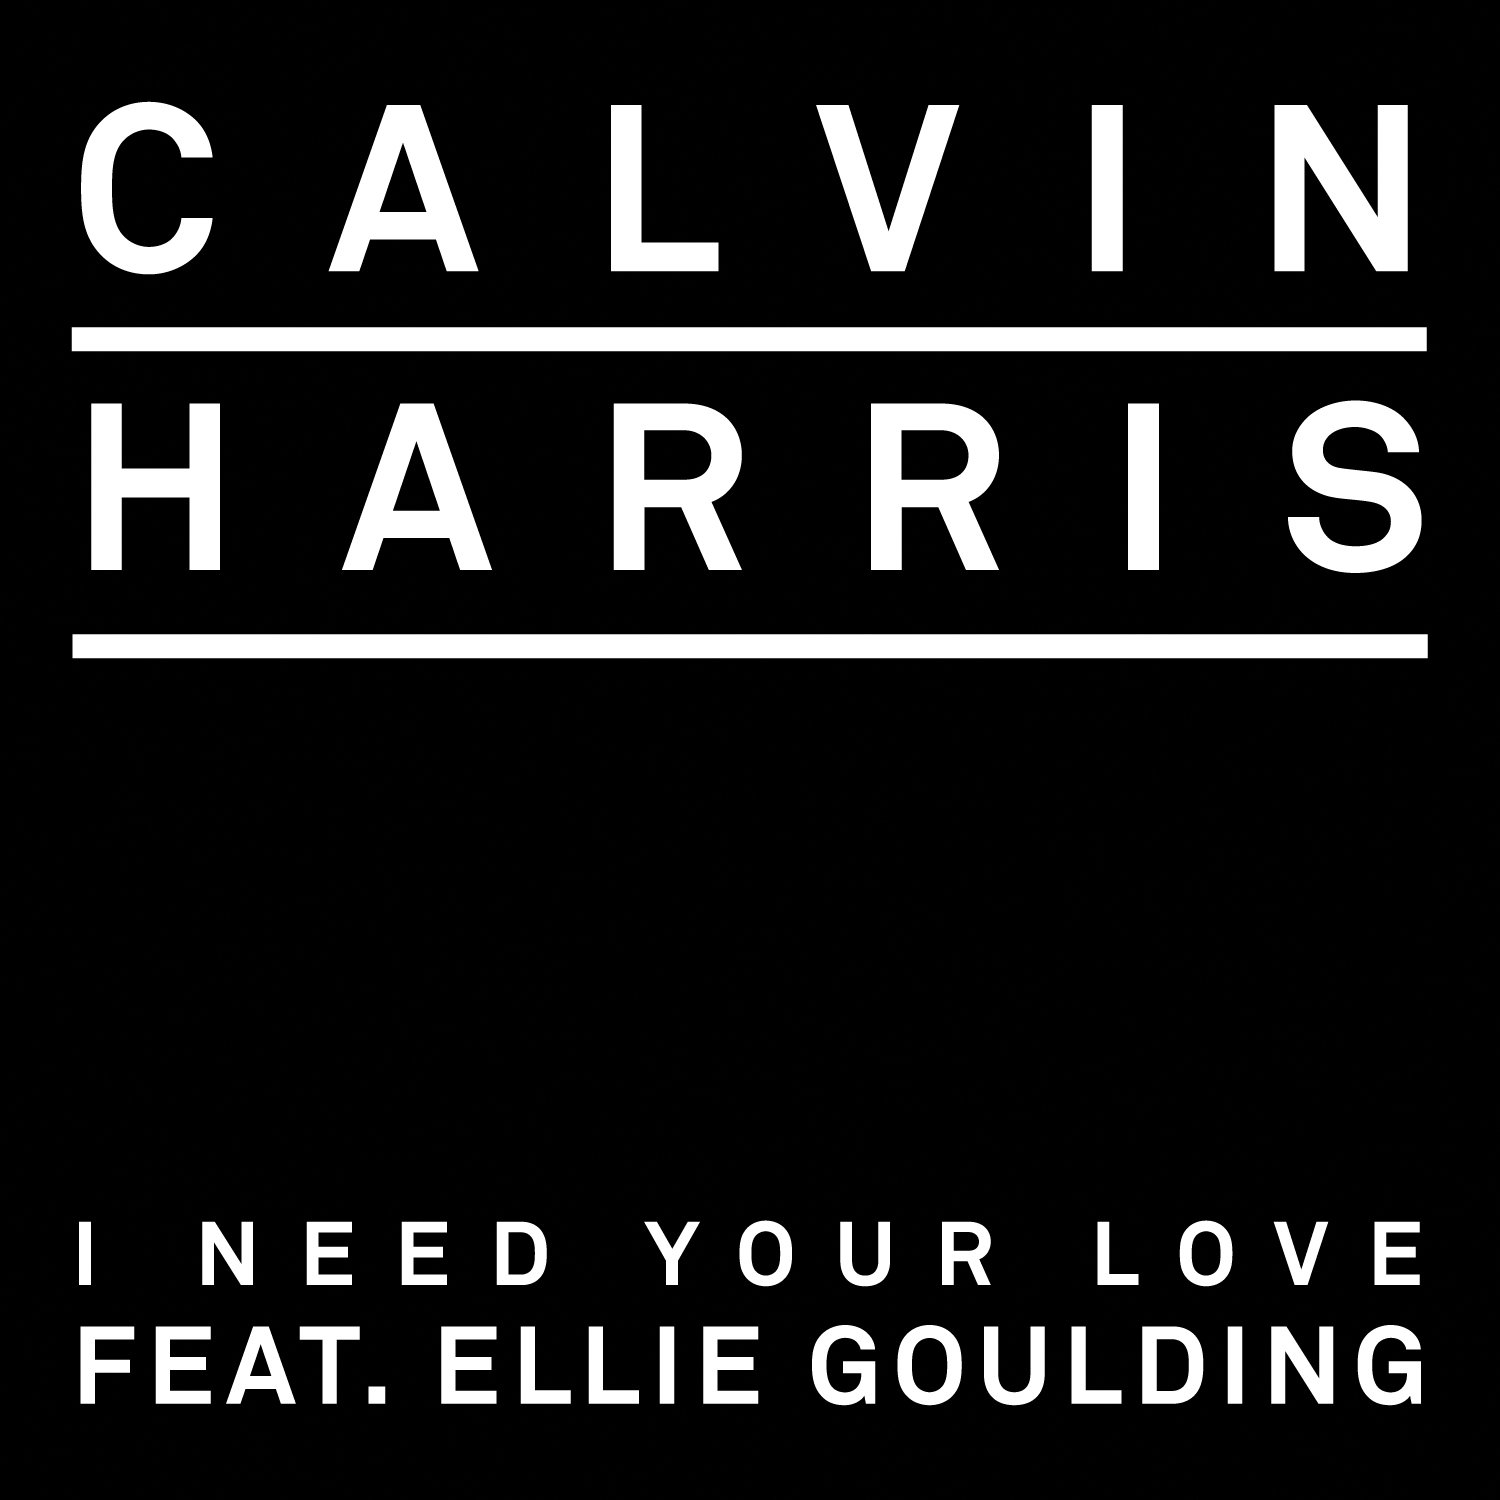 free download song i need your love calvin harris